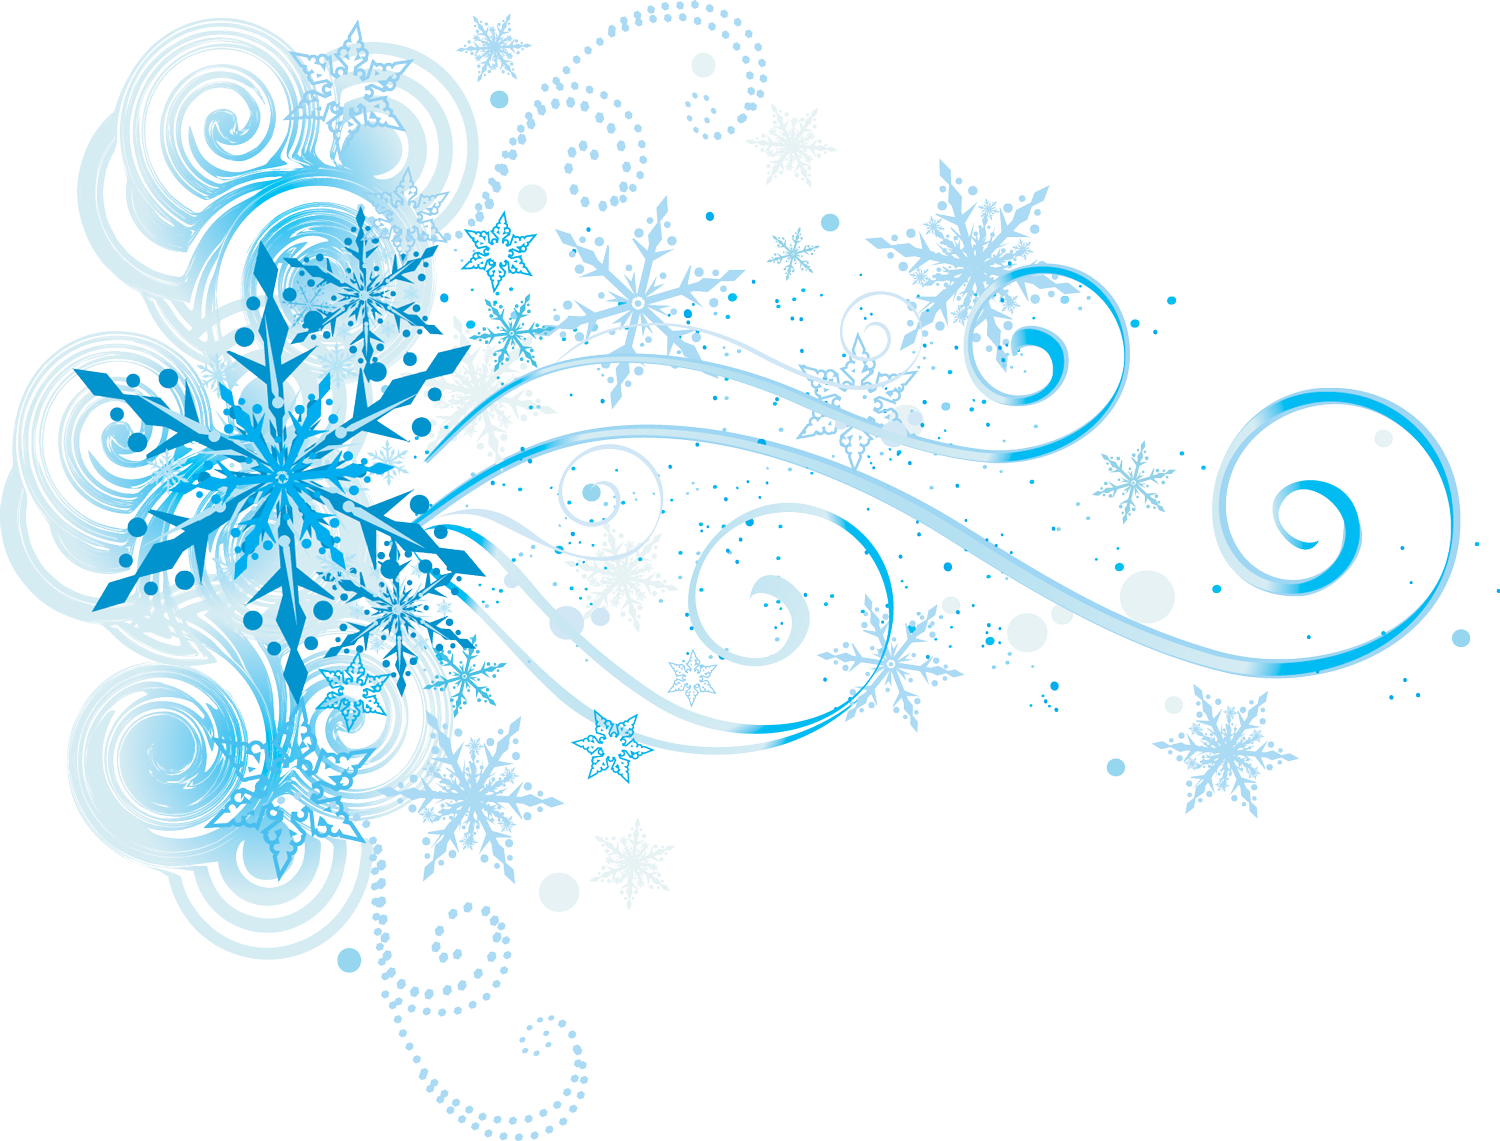 Snowflake wallpaper clipart png library download wrap around the shoulder with ribbons flowing down the arm ... png library download